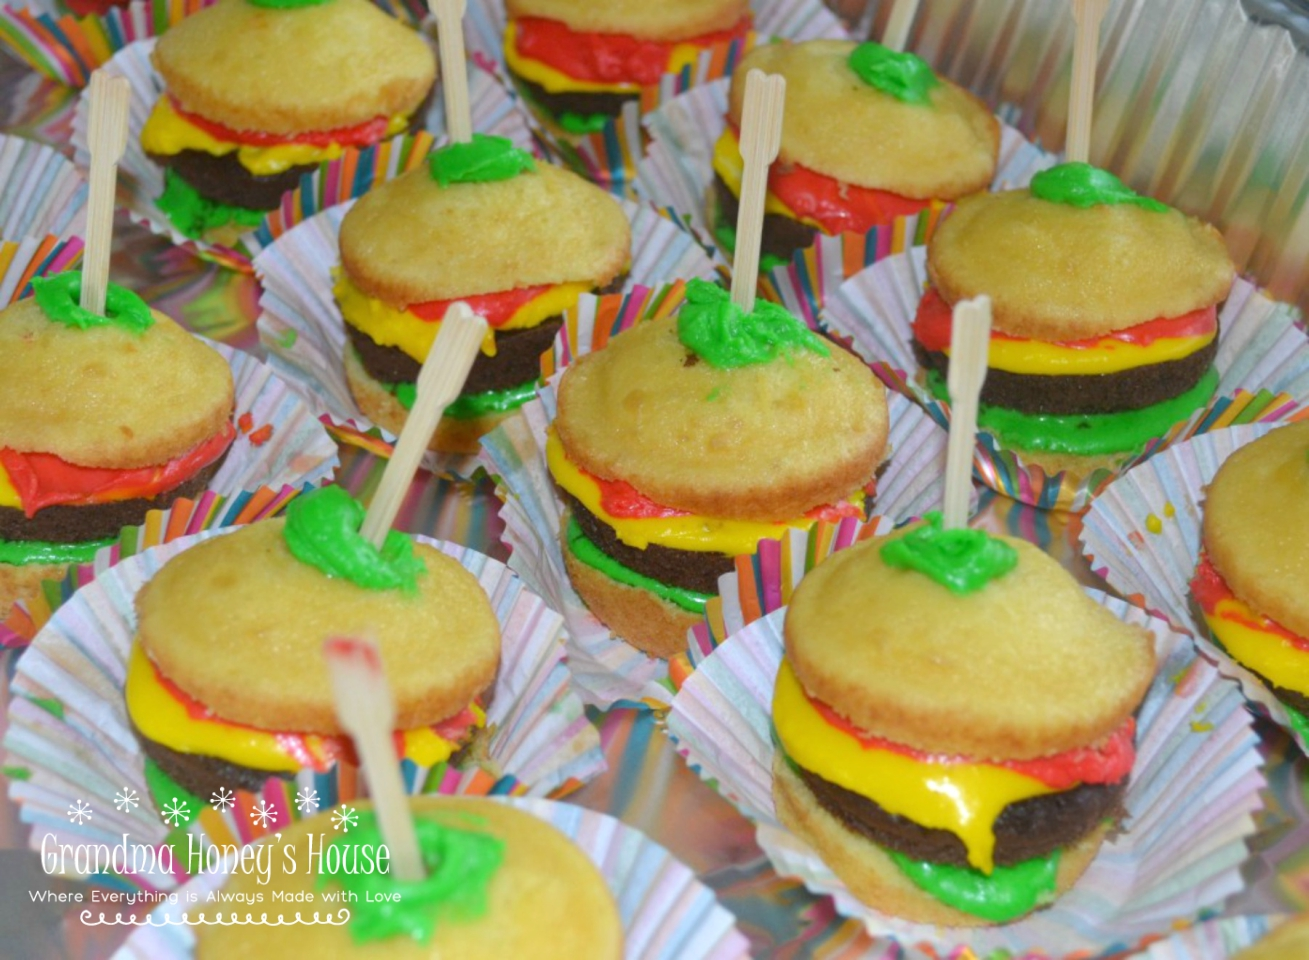 Cook-out Cupcakes are a fun and tasty summertime dessert. Cupcakes are decorated to look like a cheeseburger. Loved by adults as well as children.